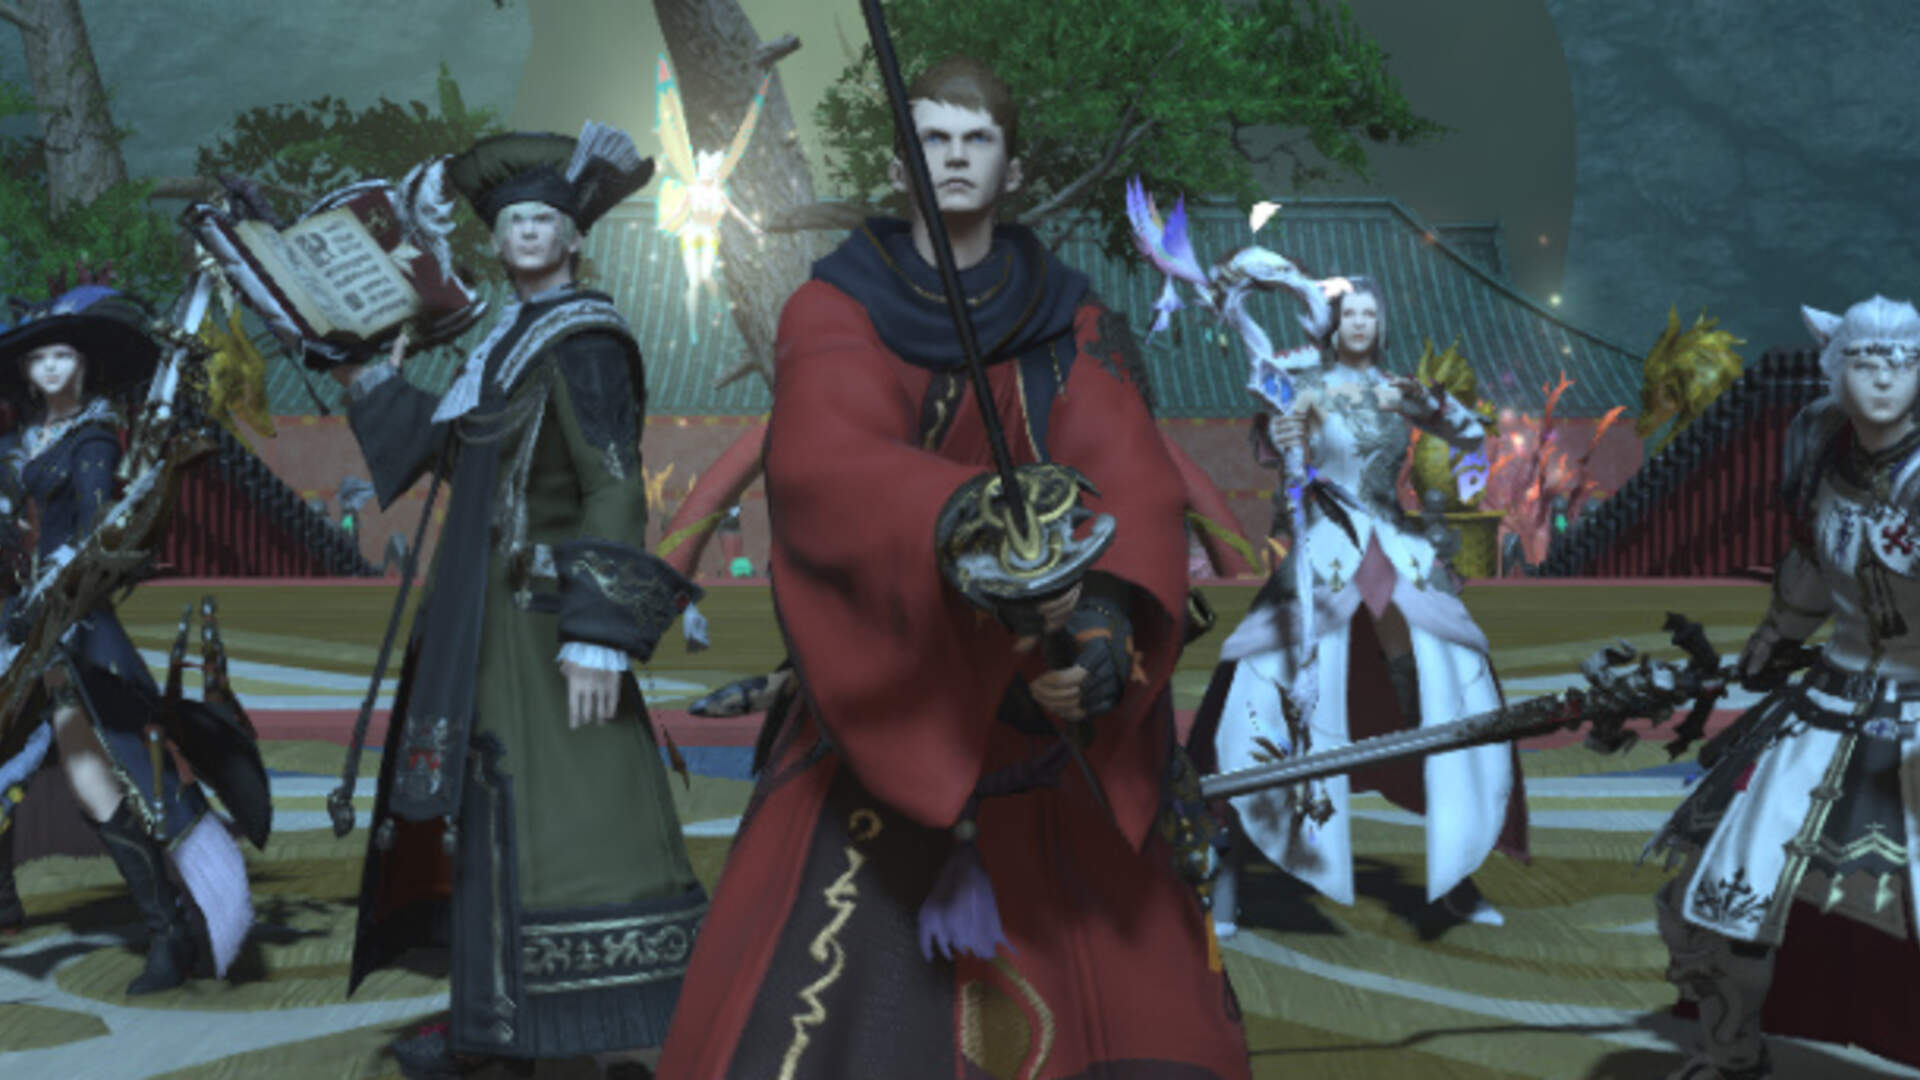 Final Fantasy XIV: Stormblood Review: A Revolution That Lives Up To the 'Final Fantasy' Name